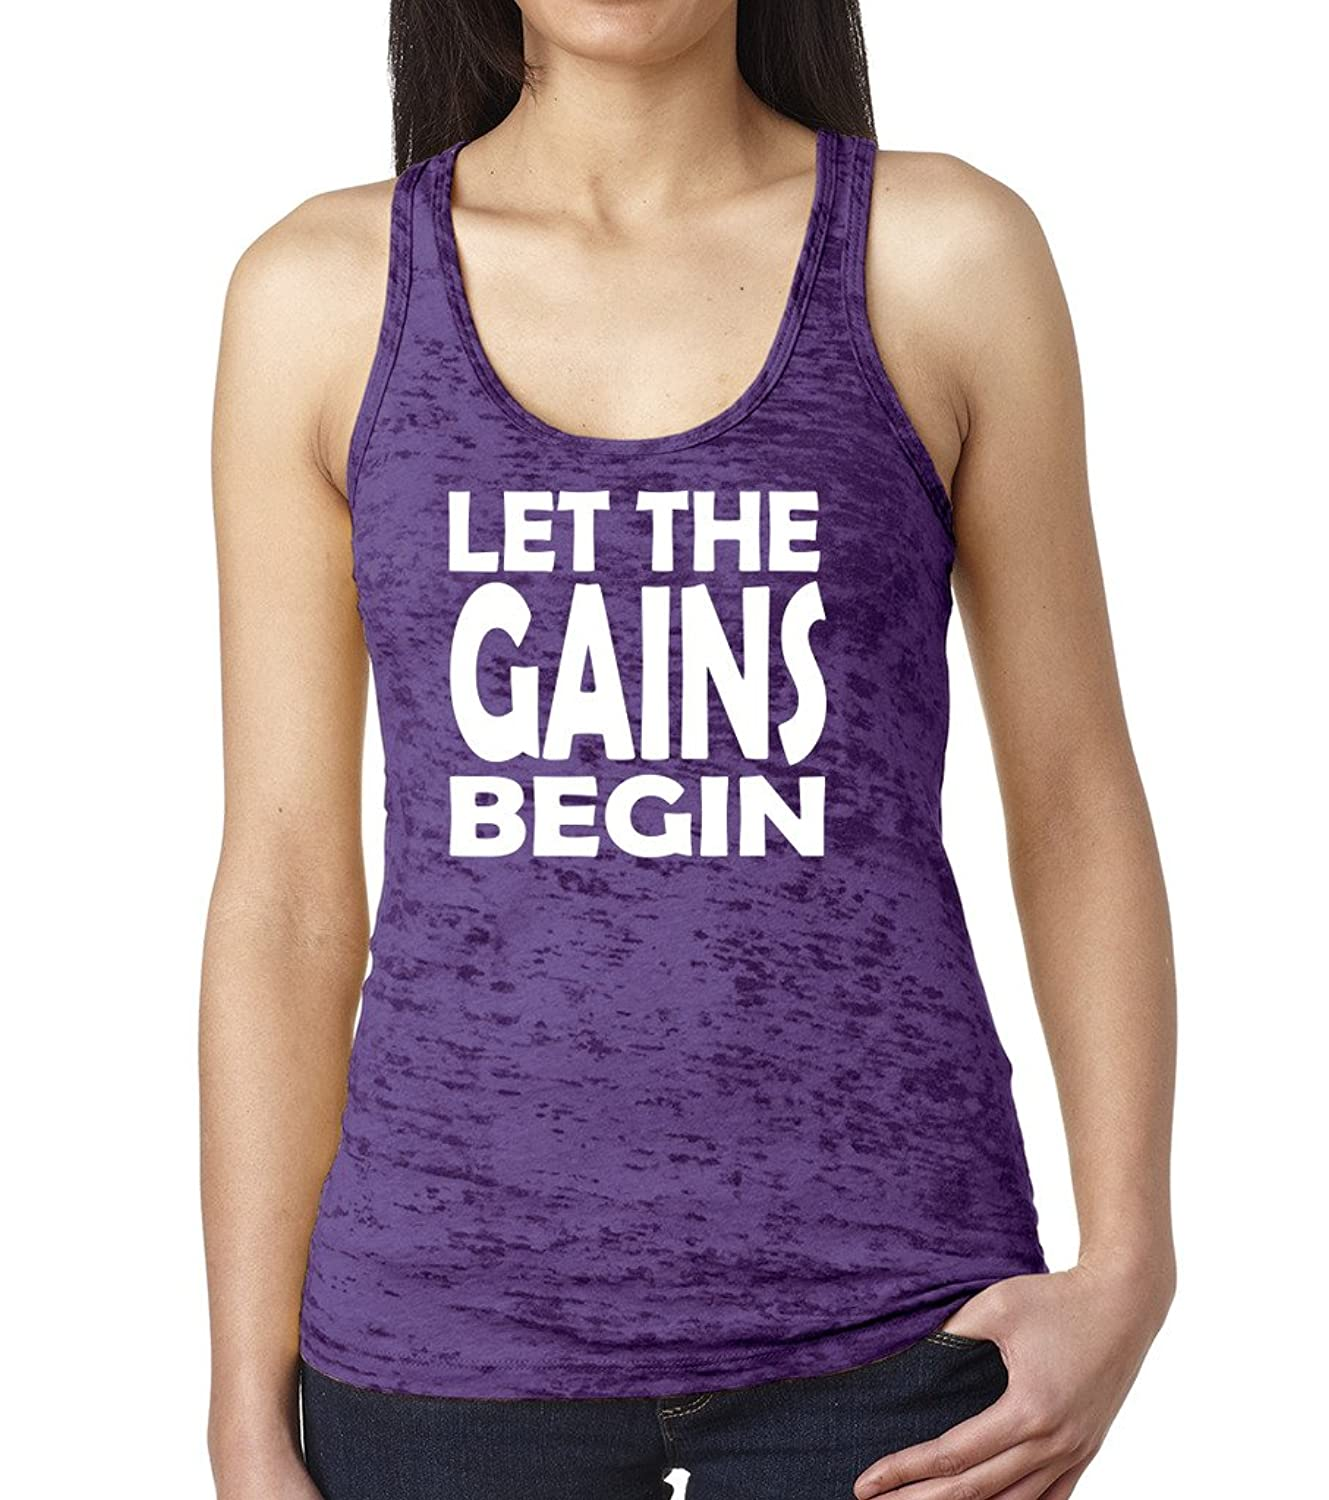 Sexy Girl Rock Let the Gains Begin Burnout Racerback Gym Tank Top Fitness Tee